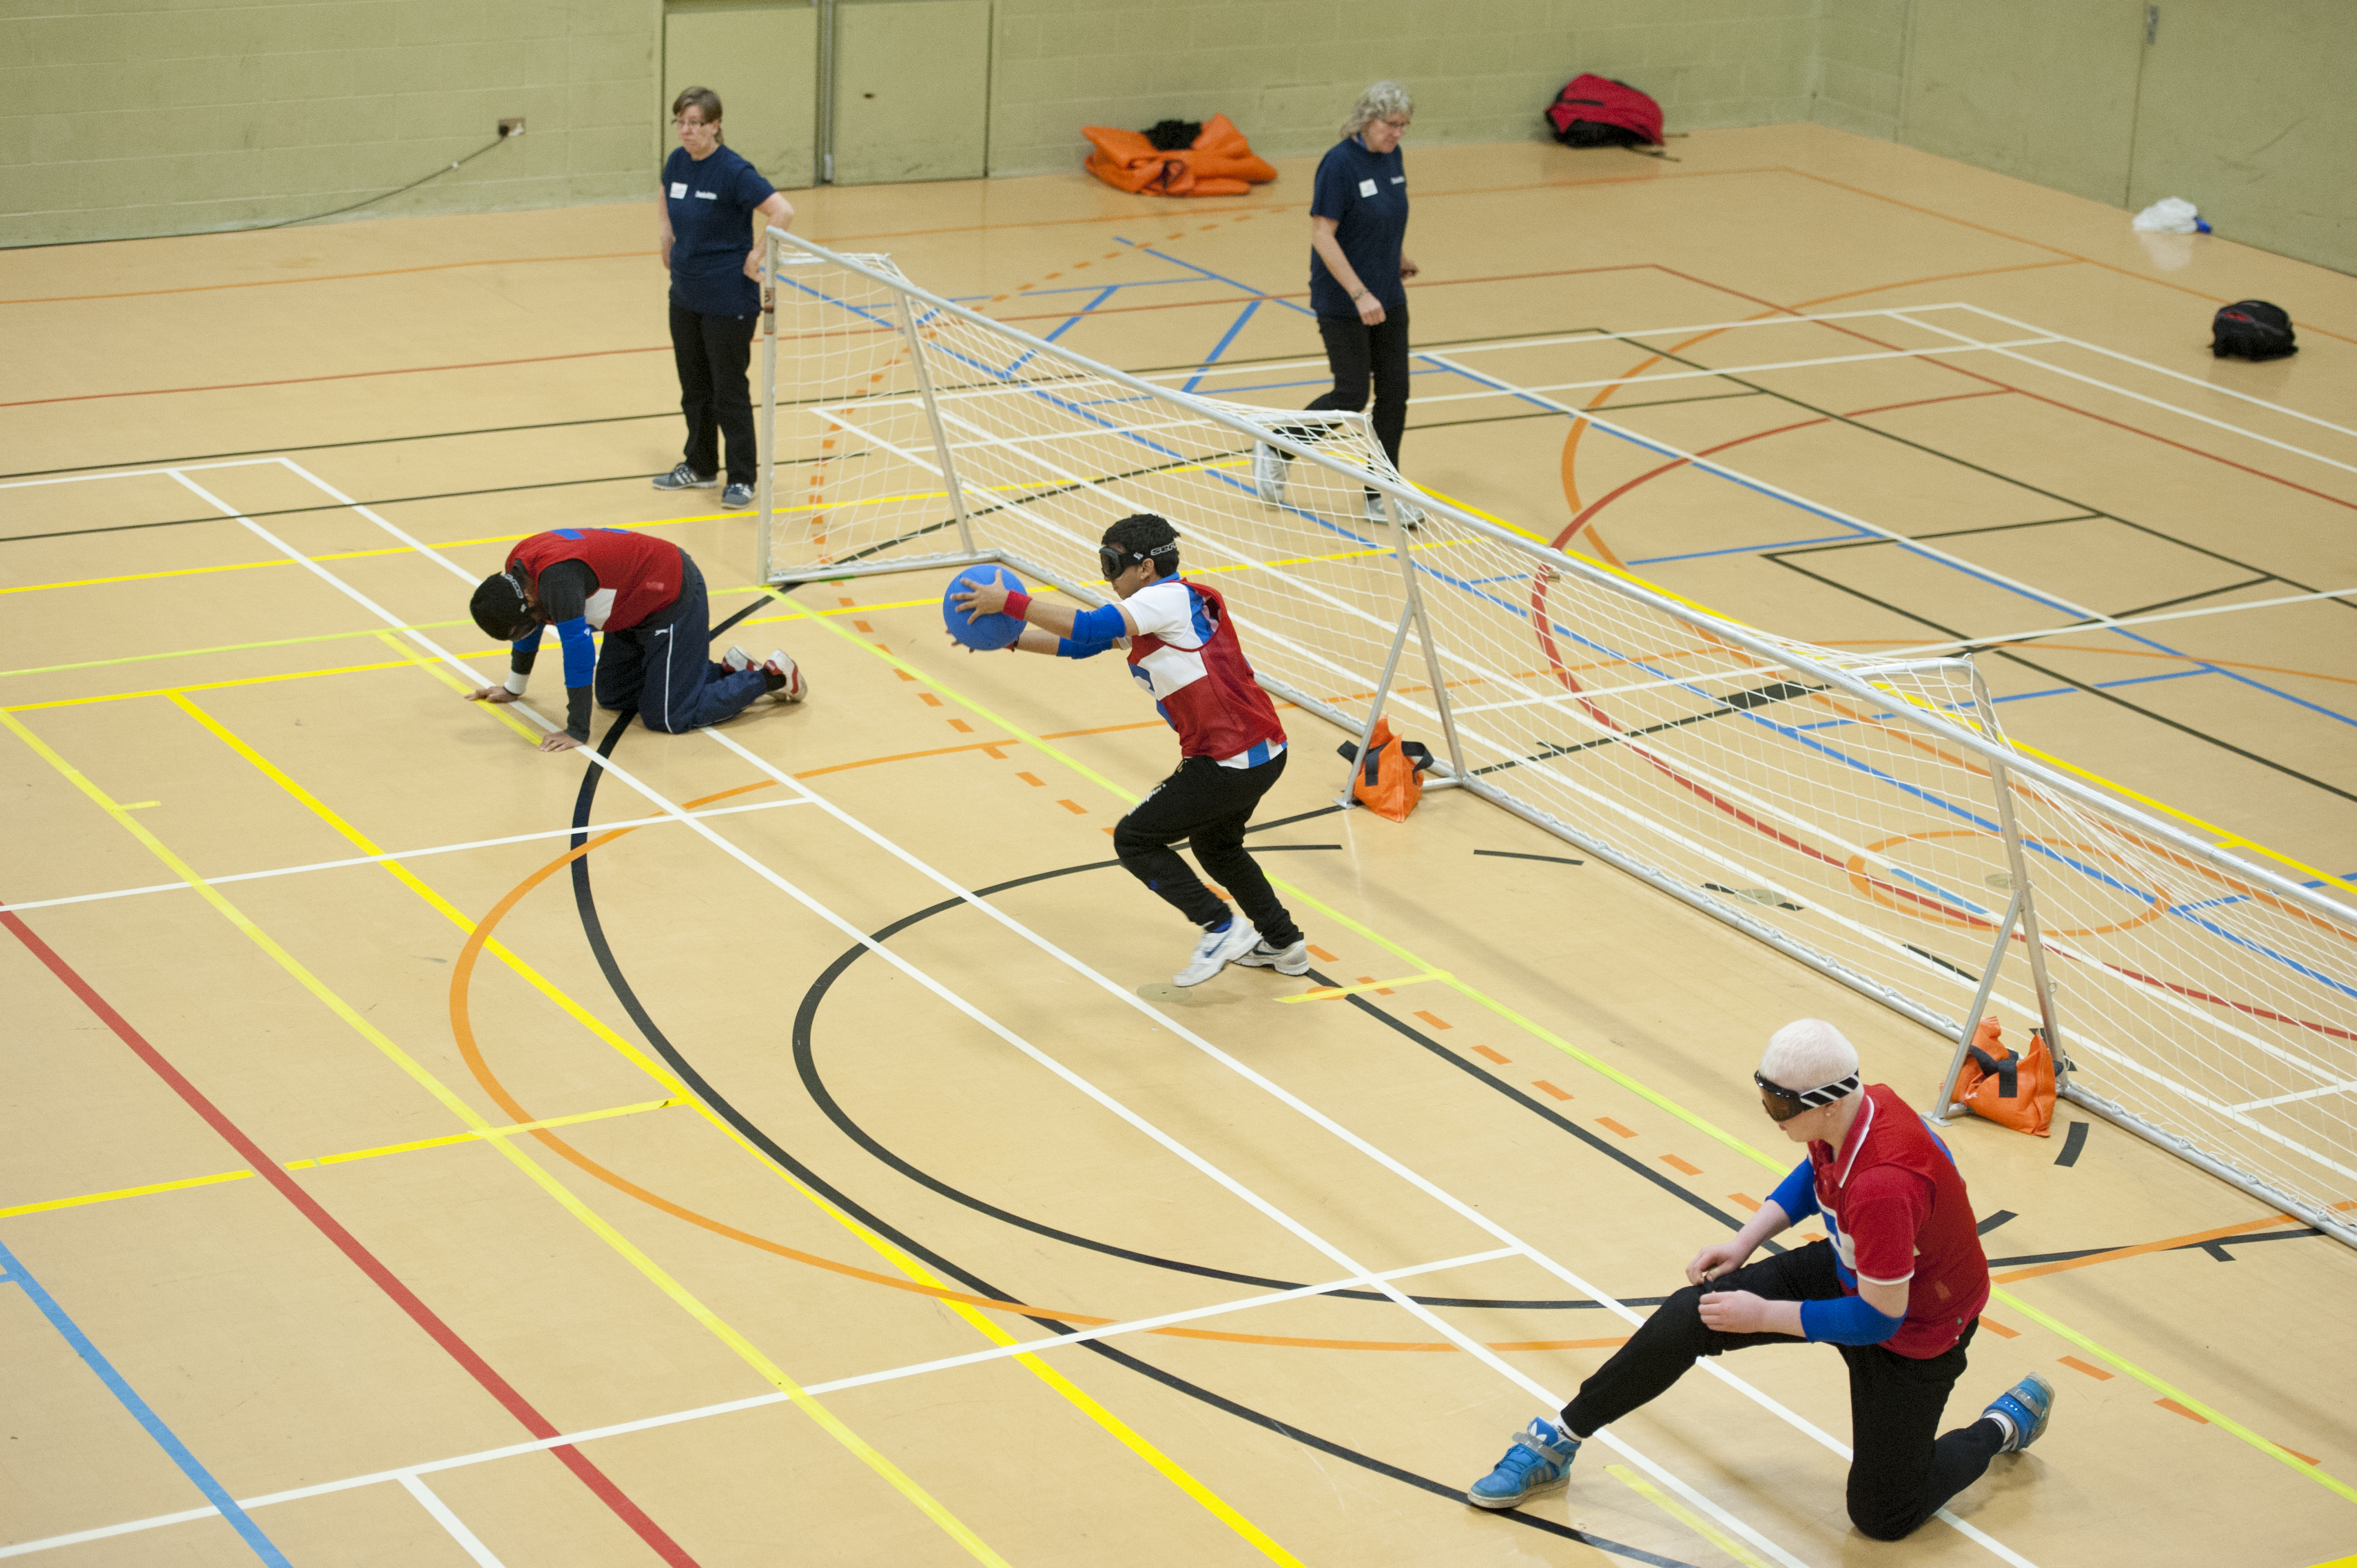 Goalball UK dramatically out-performs national participation levels